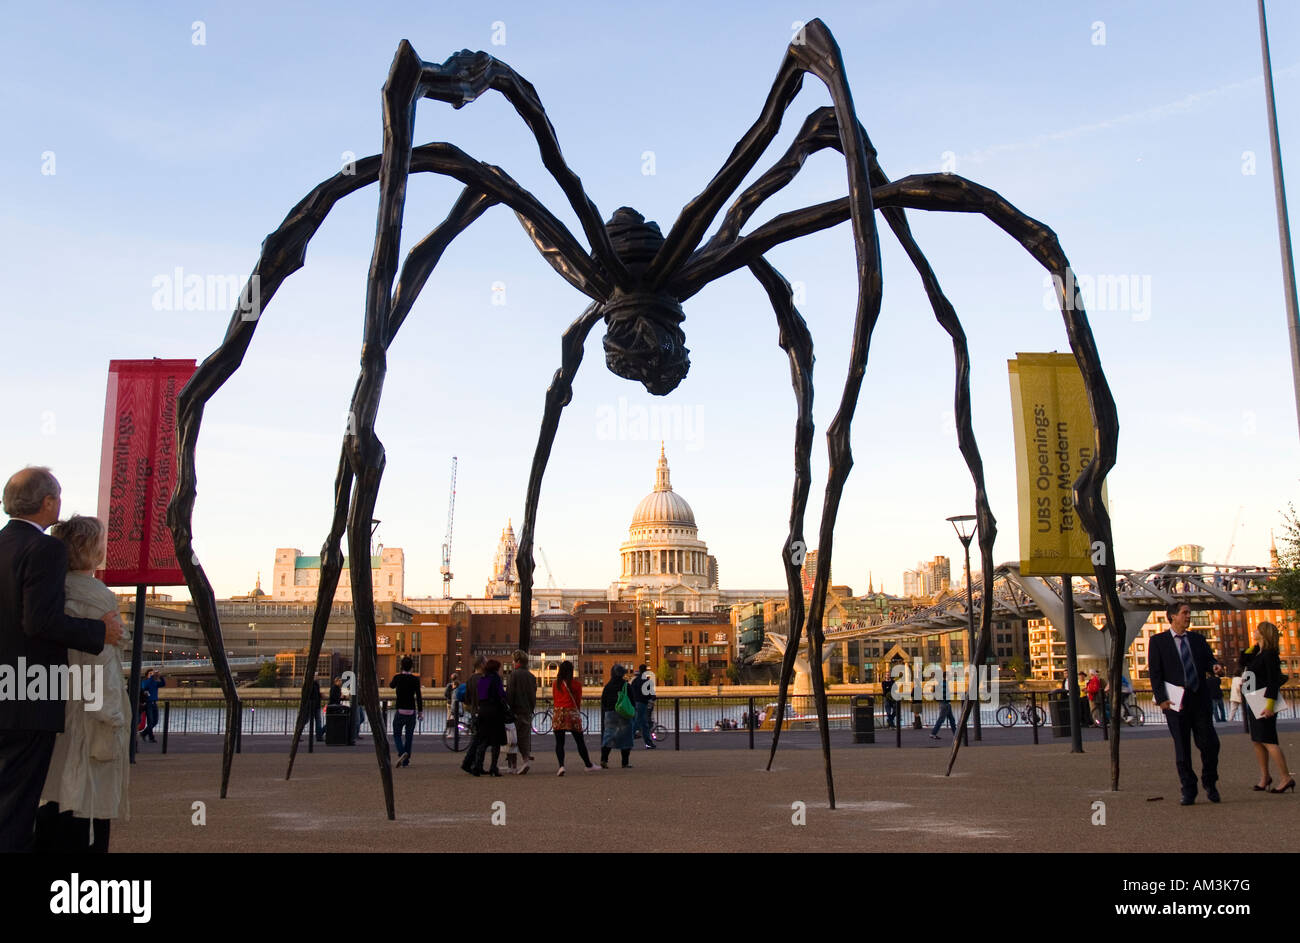 Louise Bourgeois Spider Sculpture at the Tate Modern looking across the Thames to St Paul s Cathedral - Stock Image